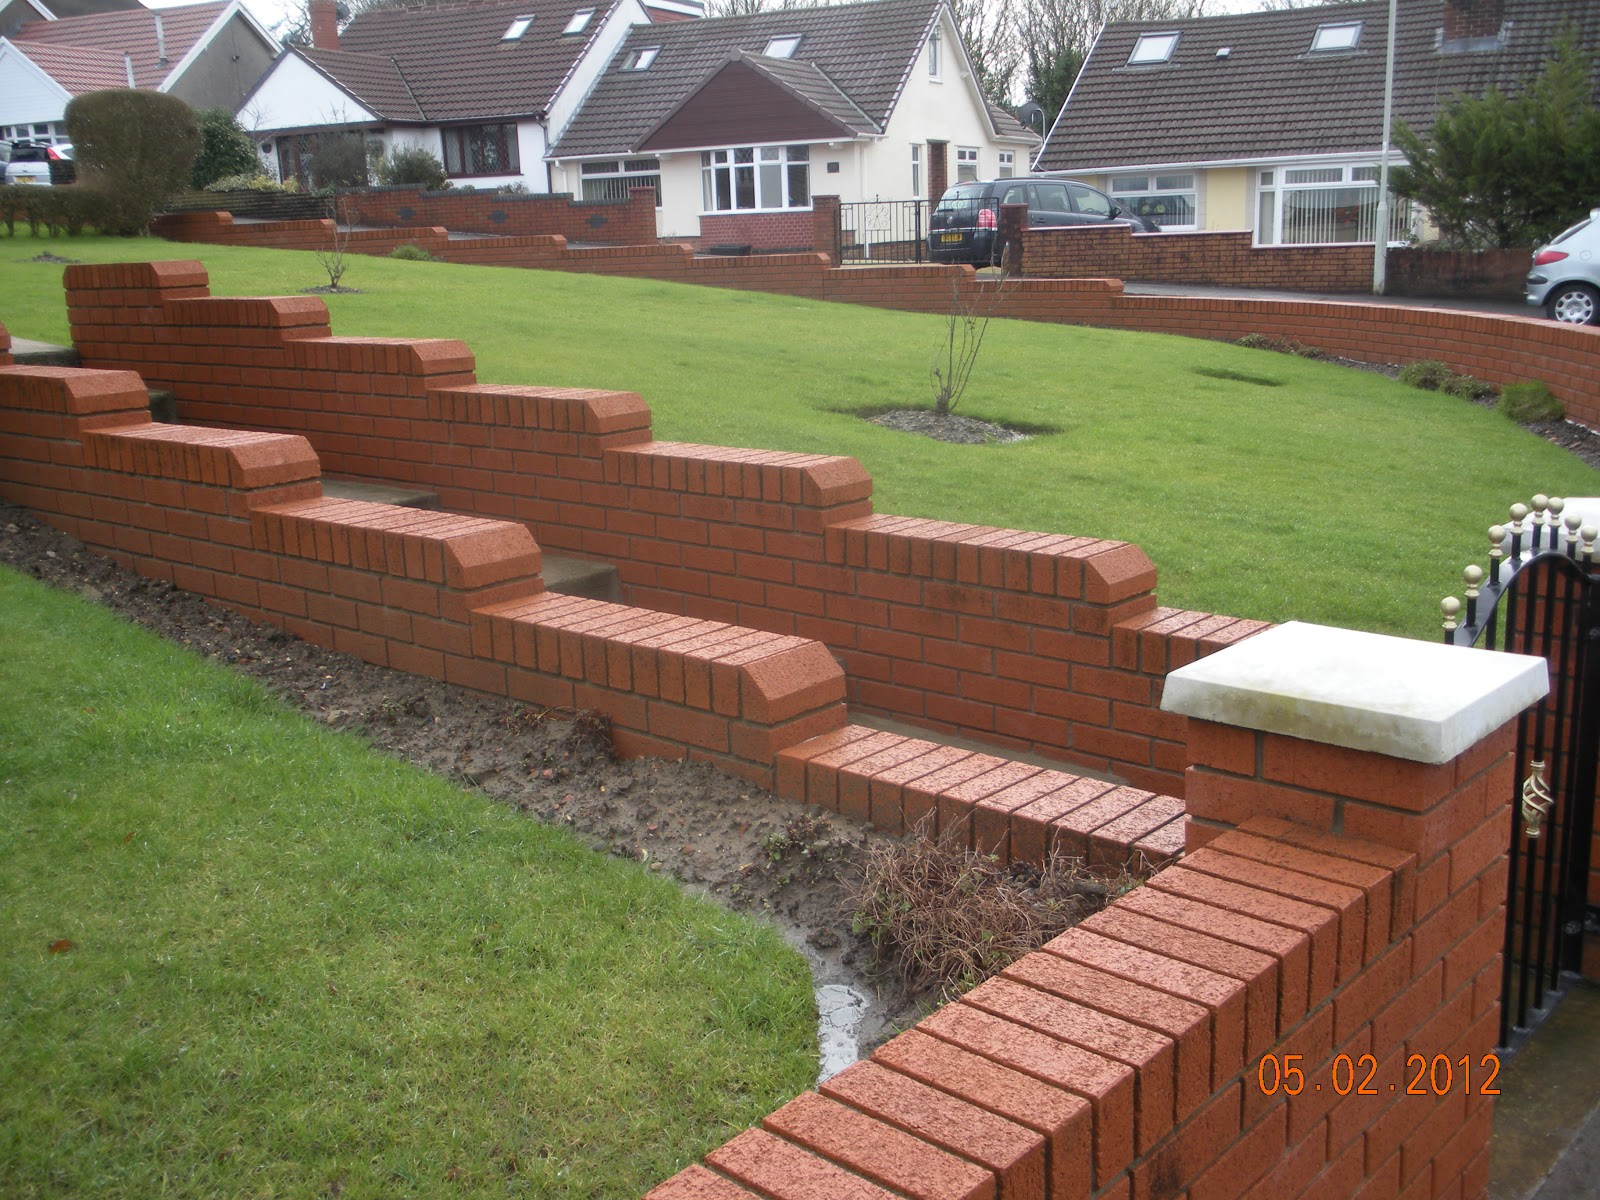 CWM LLYNFI BRICKLAYING : 9 INCH RED FACE BRICK GARDEN WALL WITH ...